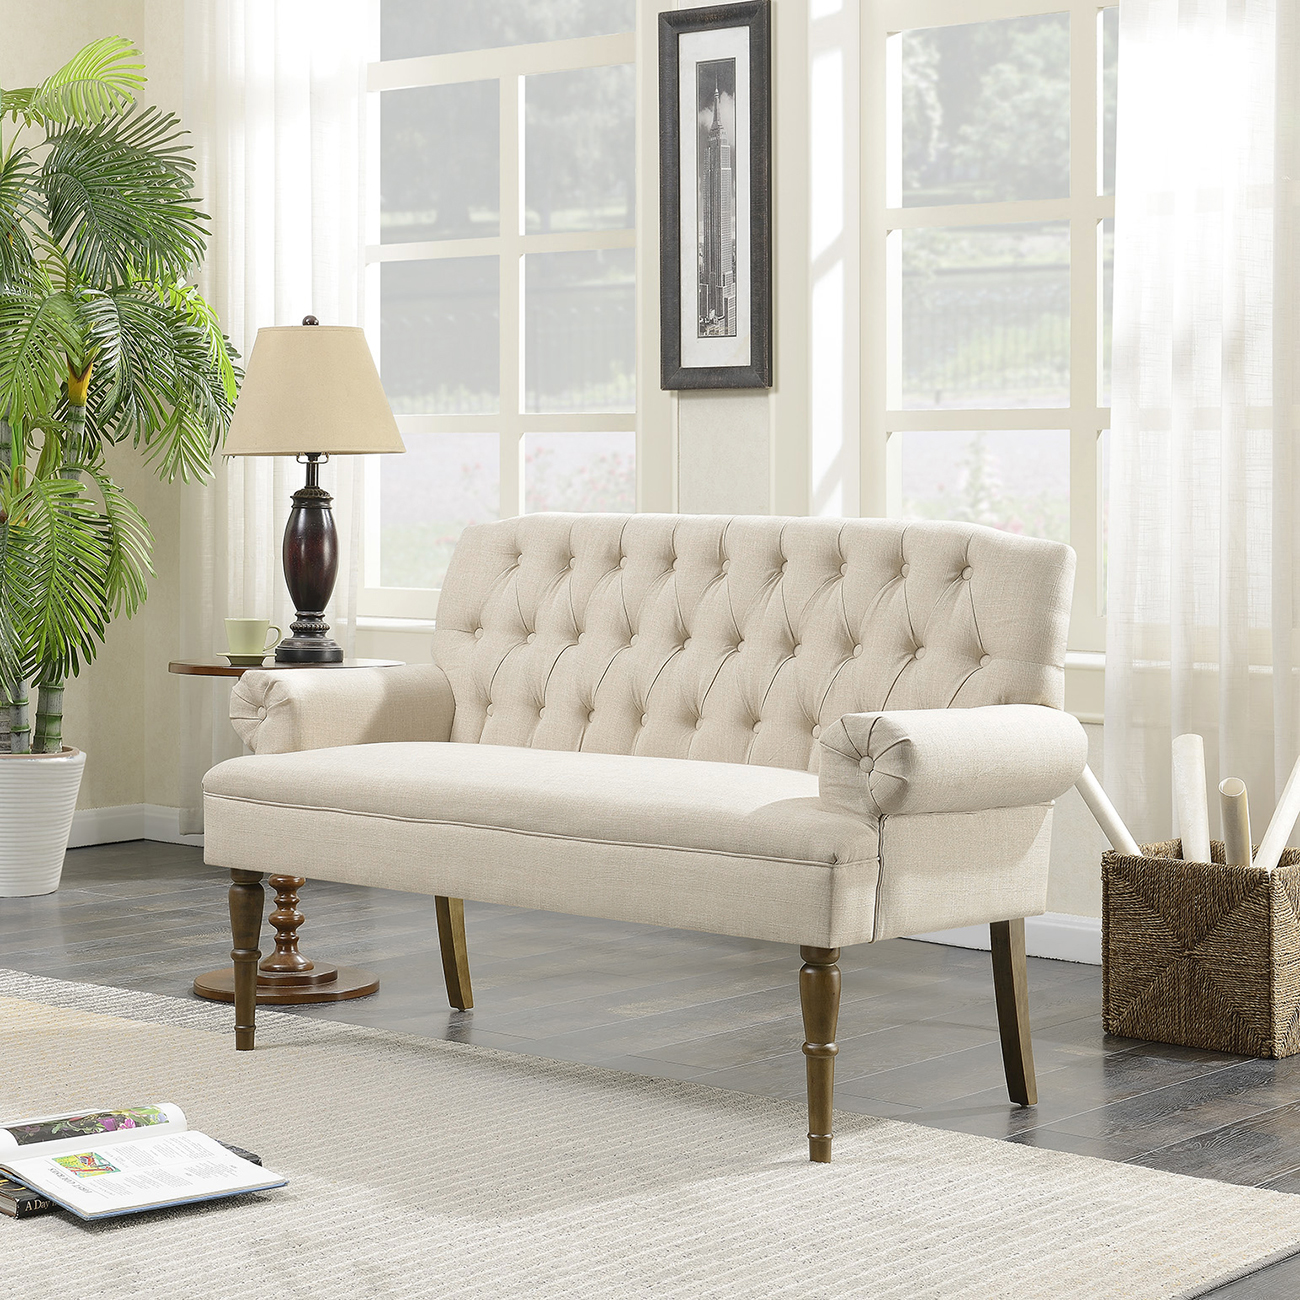 Belleze Button Tufted Mid Century Settee Upholstered